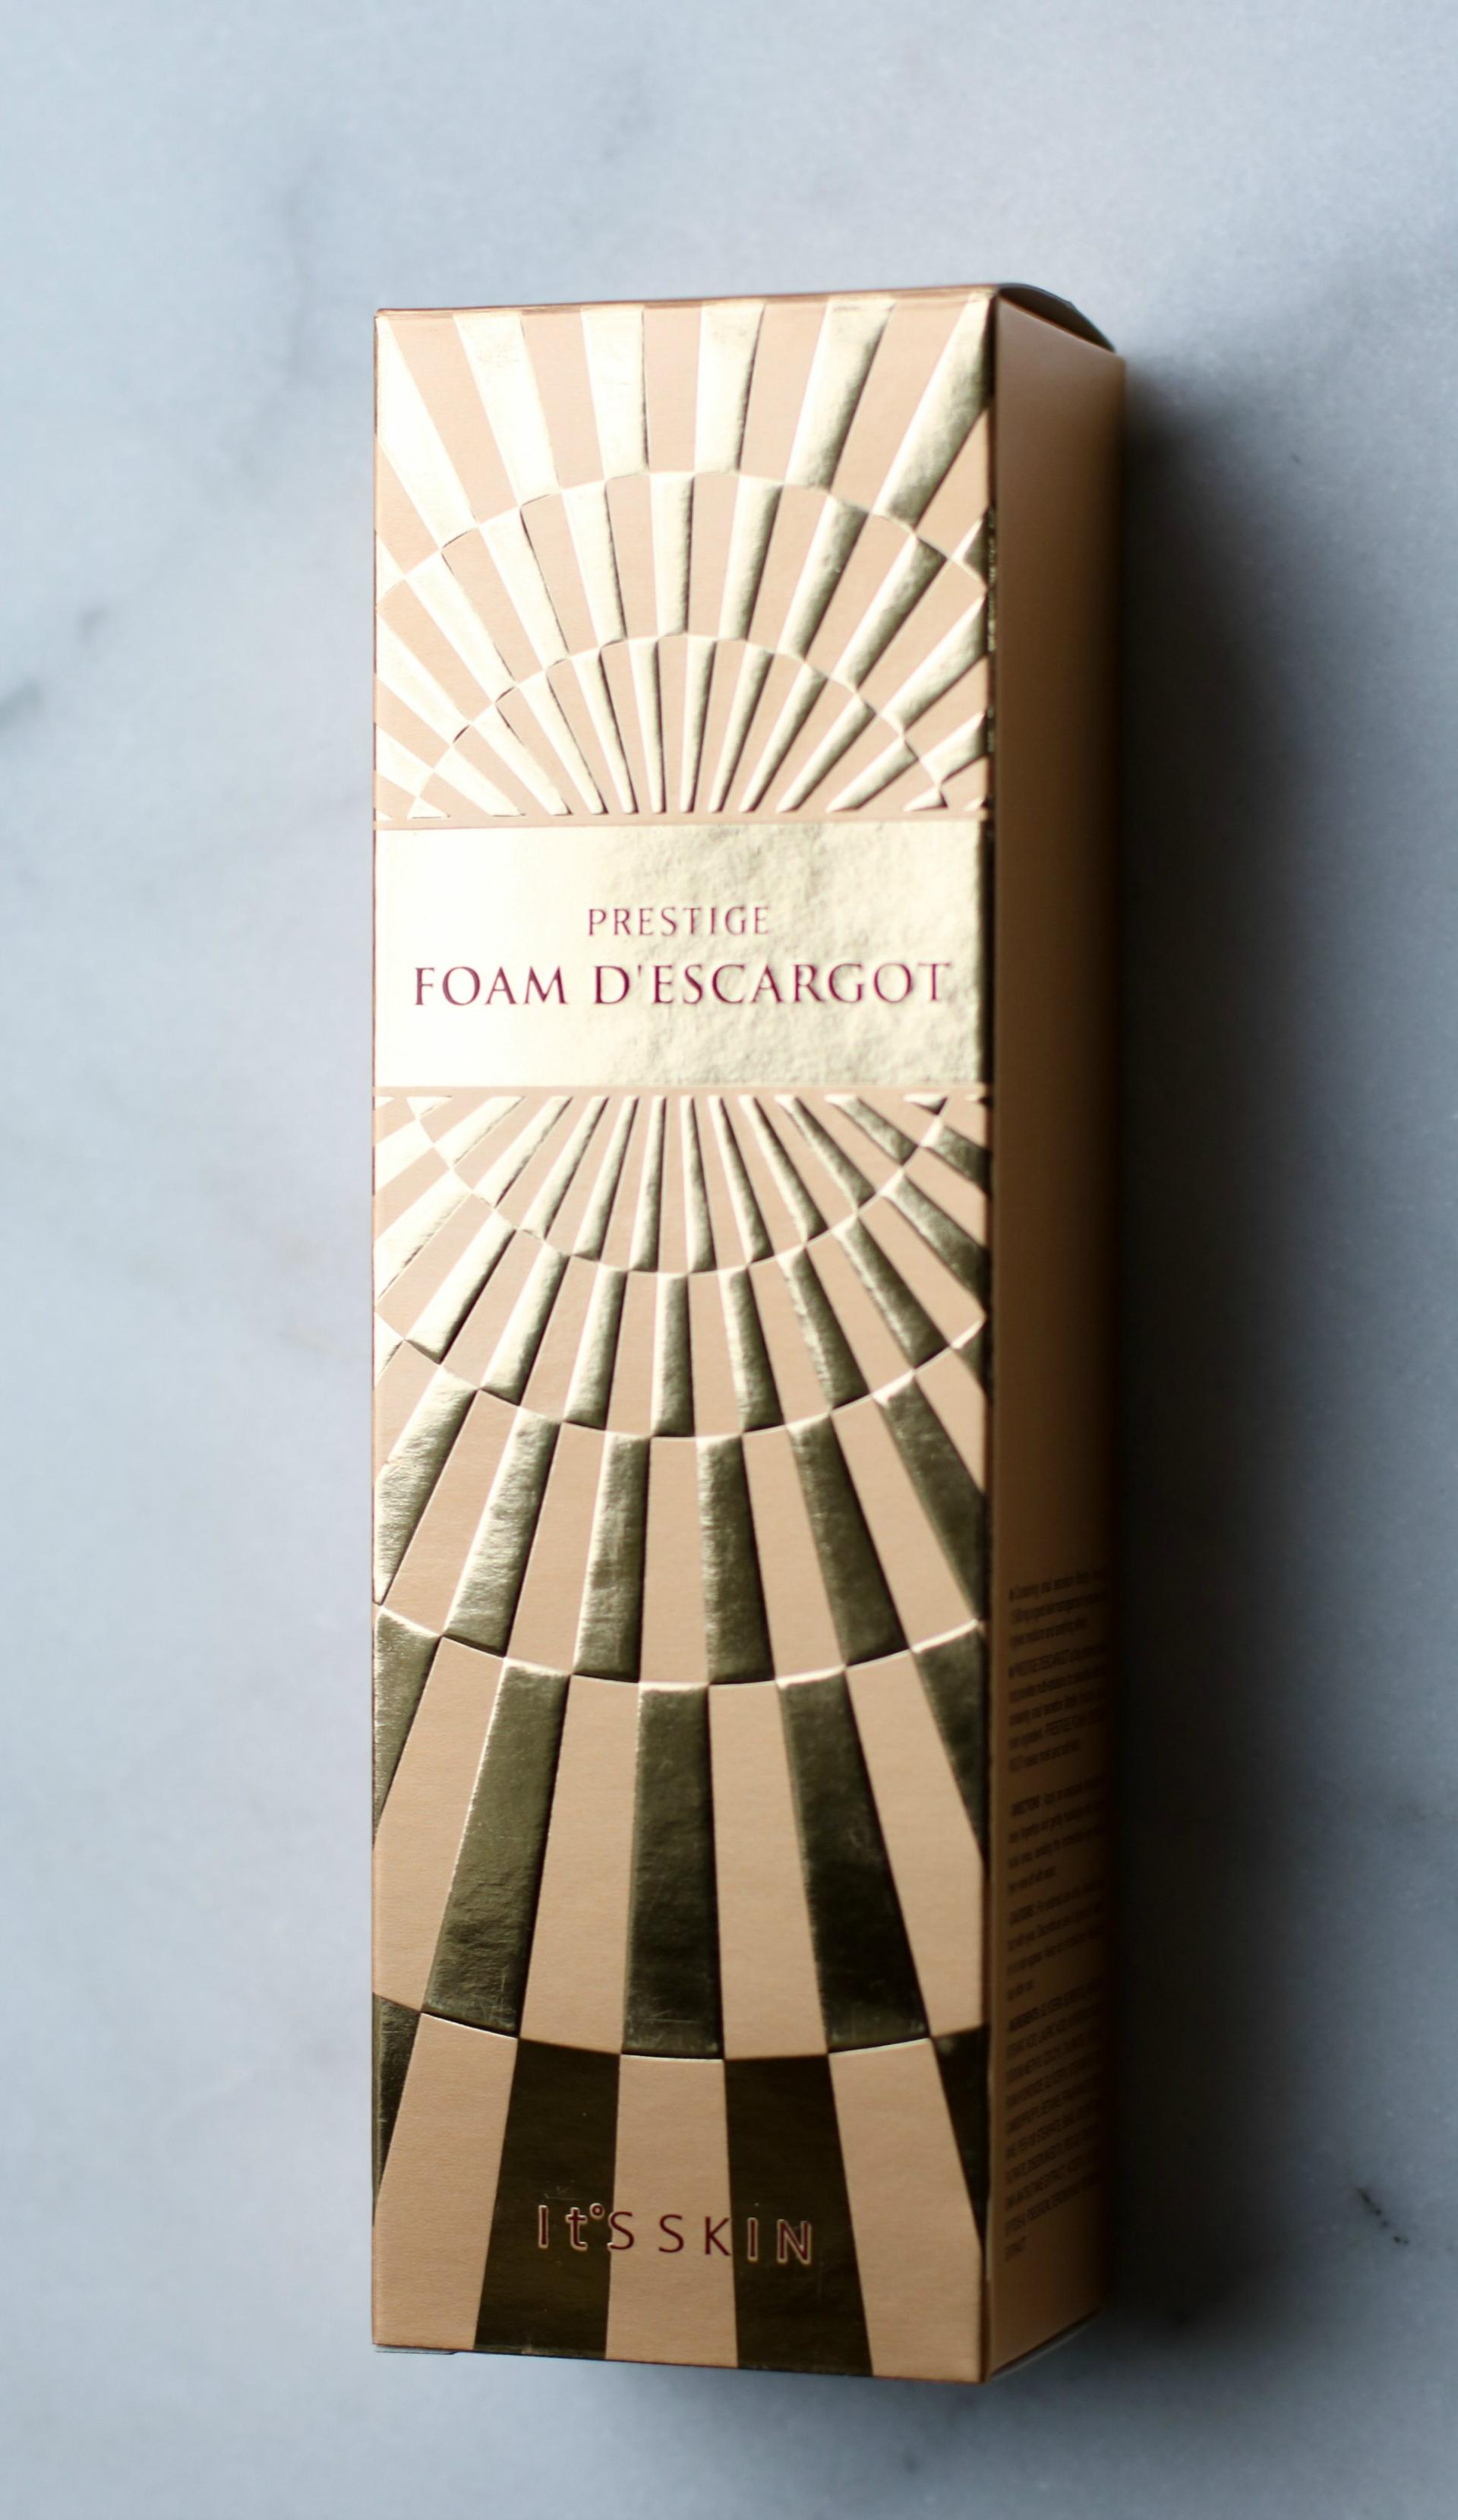 Prestige Foam D'Escargot Facial Cleanser